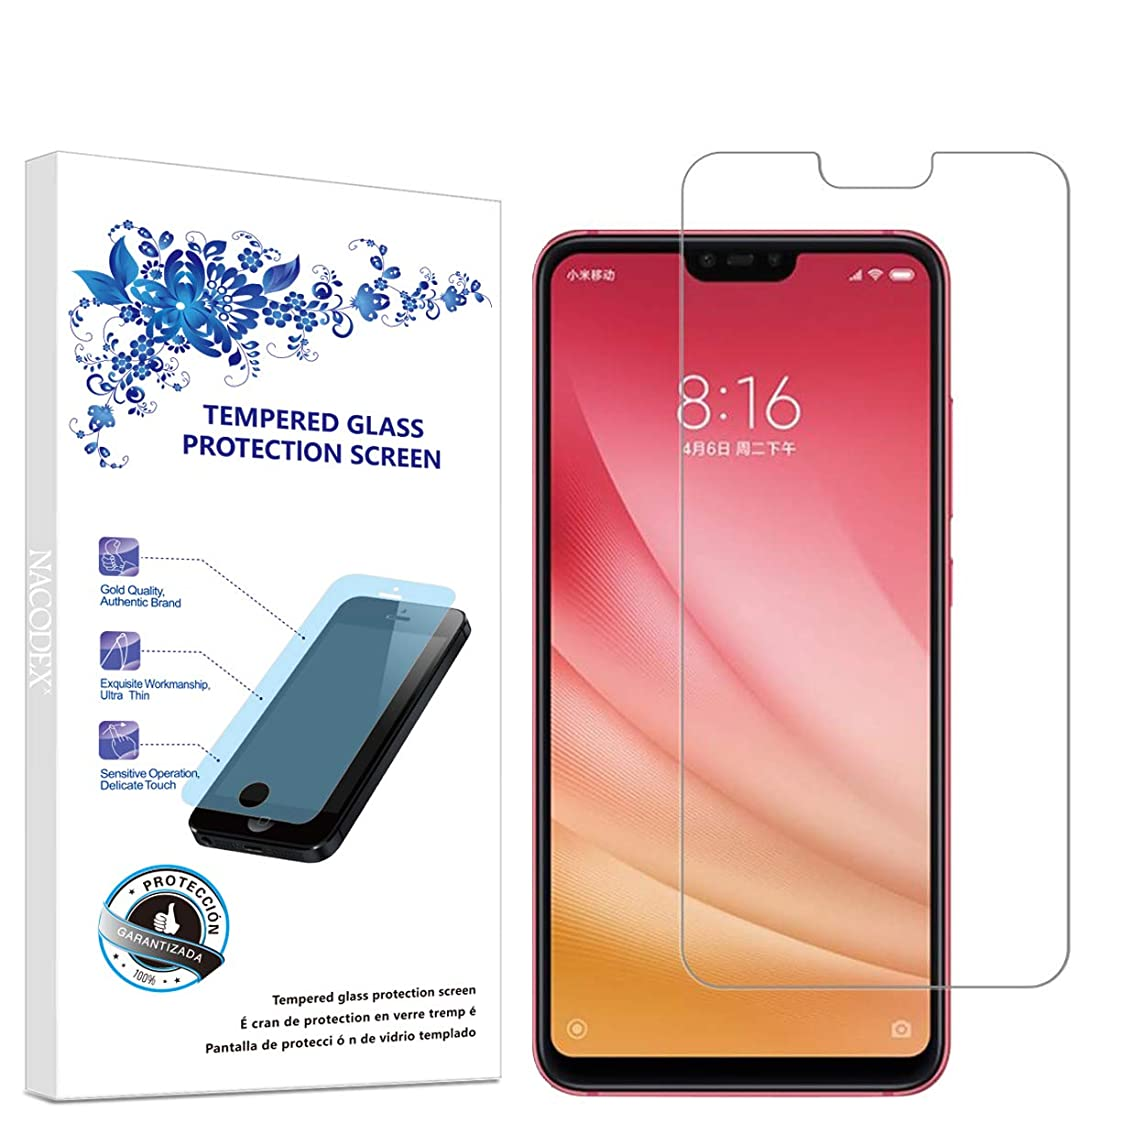 Screen Protector Compatible Xiaomi Mi 8 Lite, Tempered Glass Screen Protector for Xiaomi mi8 LITE Ultra Clear Scratch Resistant